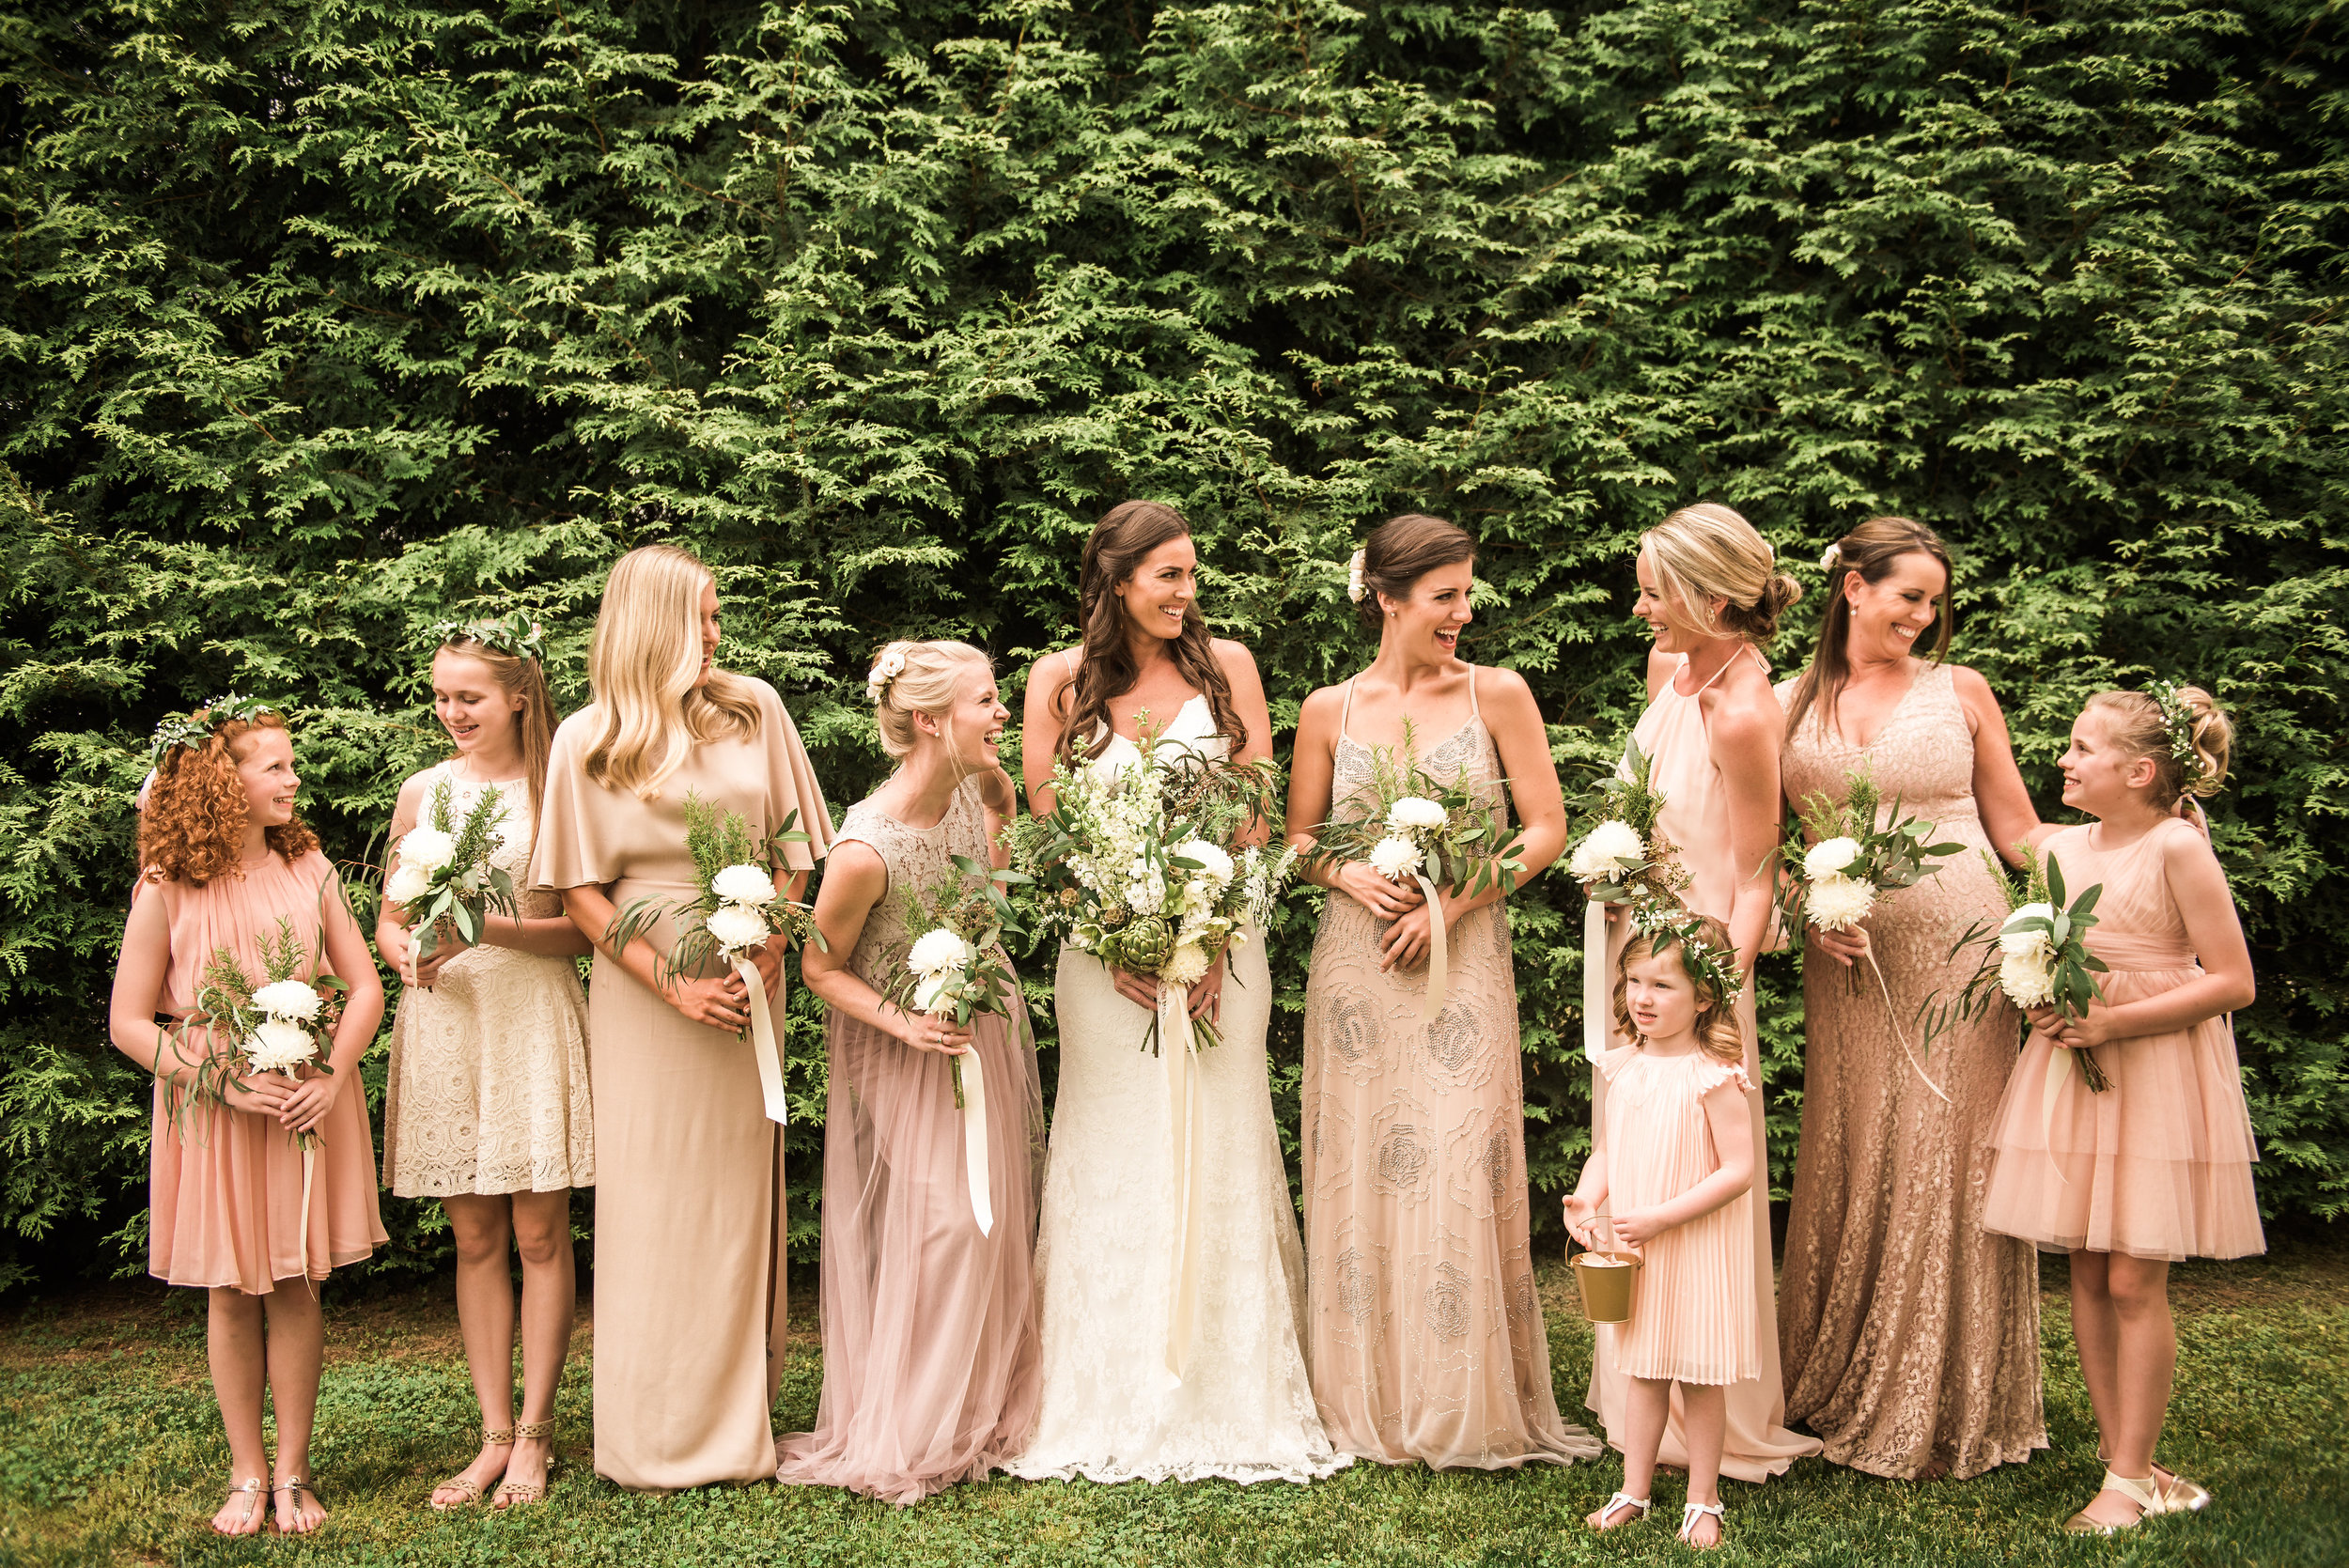 A Green and White Romantic Boho Wedding. A unique green and white, loose wildflower bridal bouquet with artichoke focal. Bridesmaids carrying small bouquets of greenery, herbs and white flowers.   Flowers by Flower Buds   Photograph by Heart and Oak Photography   Venue The Ruins at Kellum Valley Farm